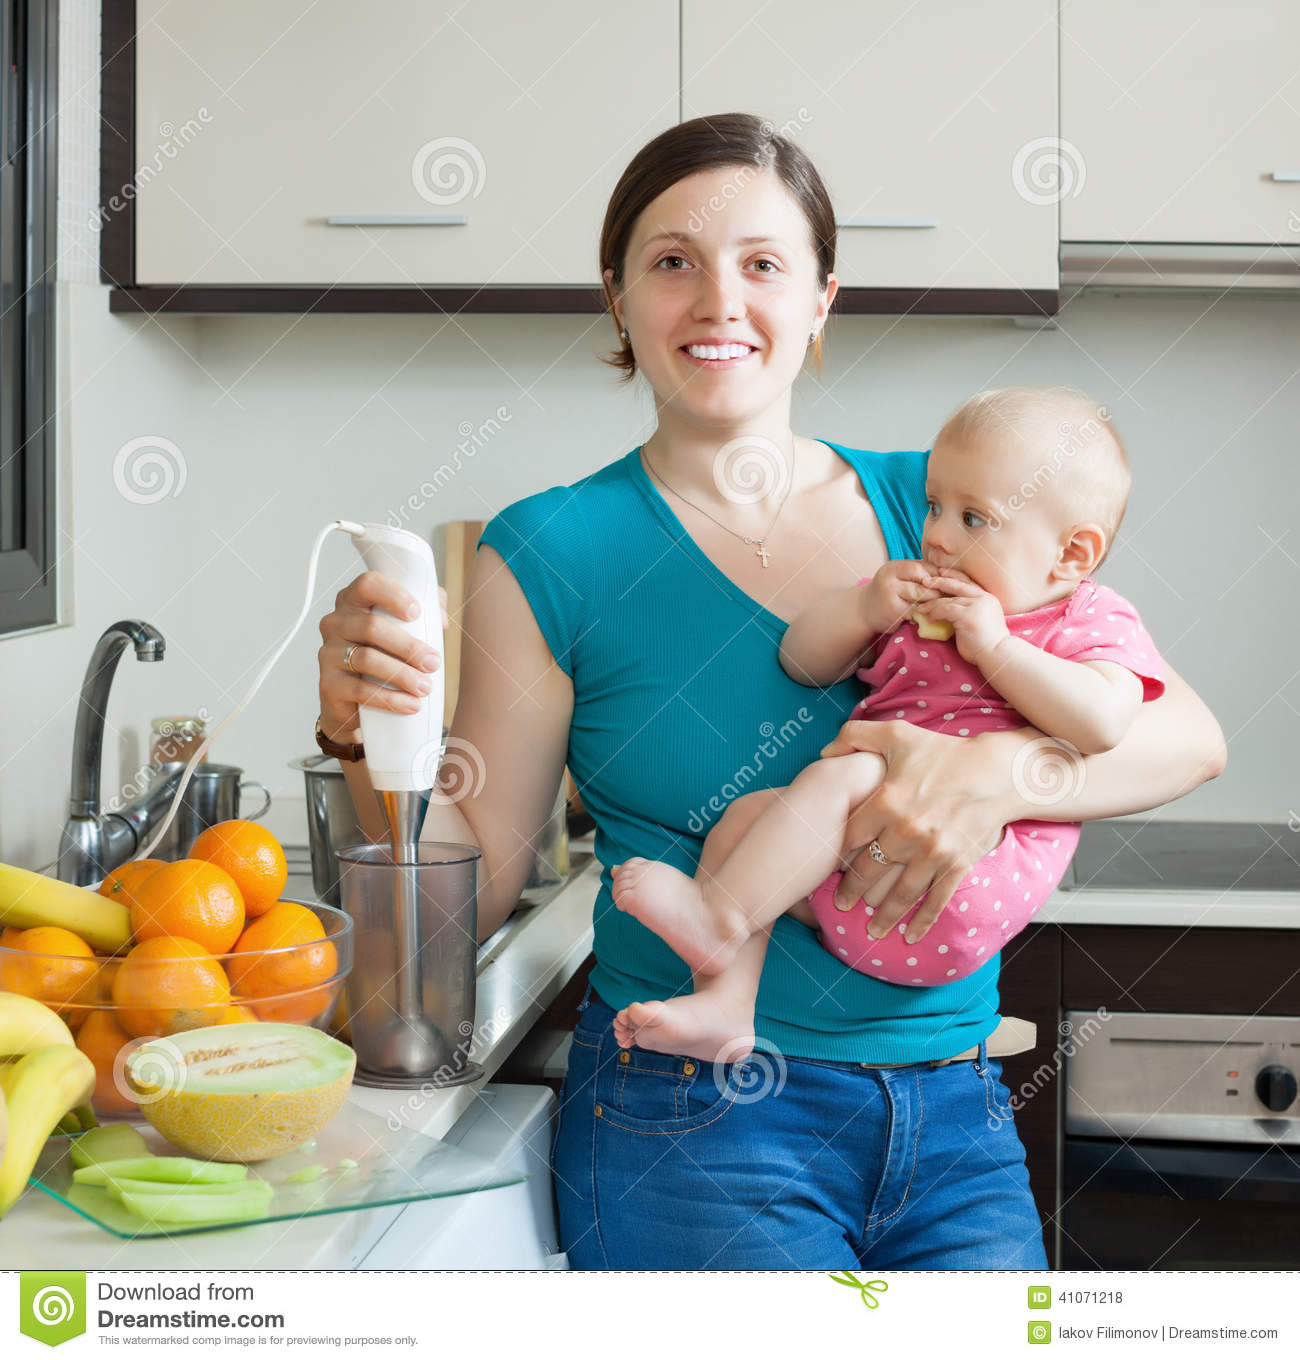 Young Woman With Baby Girl In Kitchen Stock Photo - Image of ...